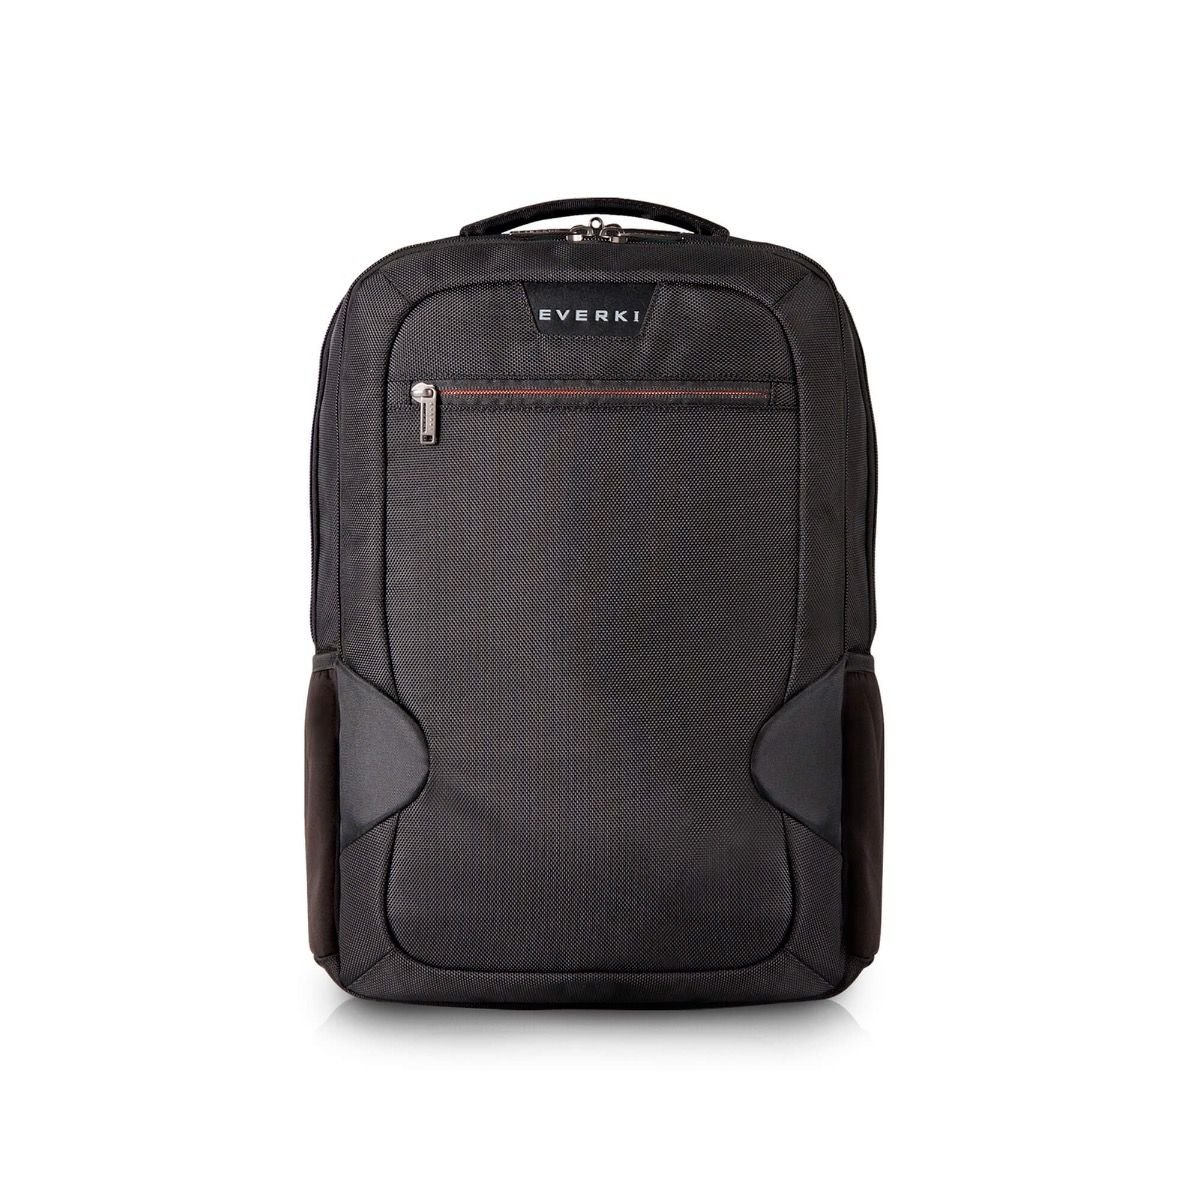 EVERKI Studio Slim 14 Inch Laptop Backpack